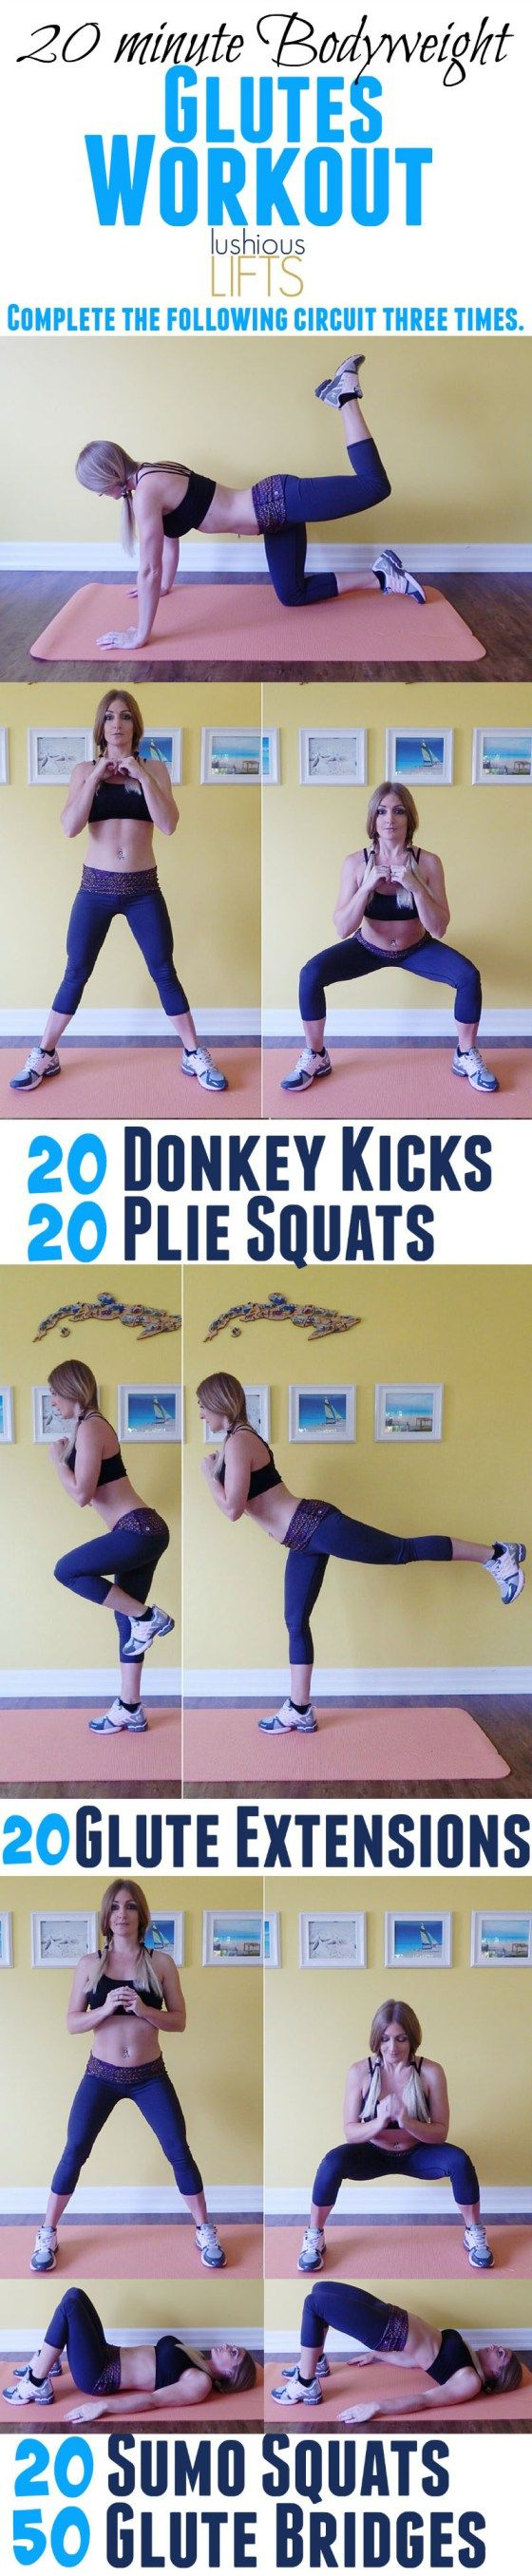 20 minute Bodyweight Glute Circuit Workout | Lushious Lifts